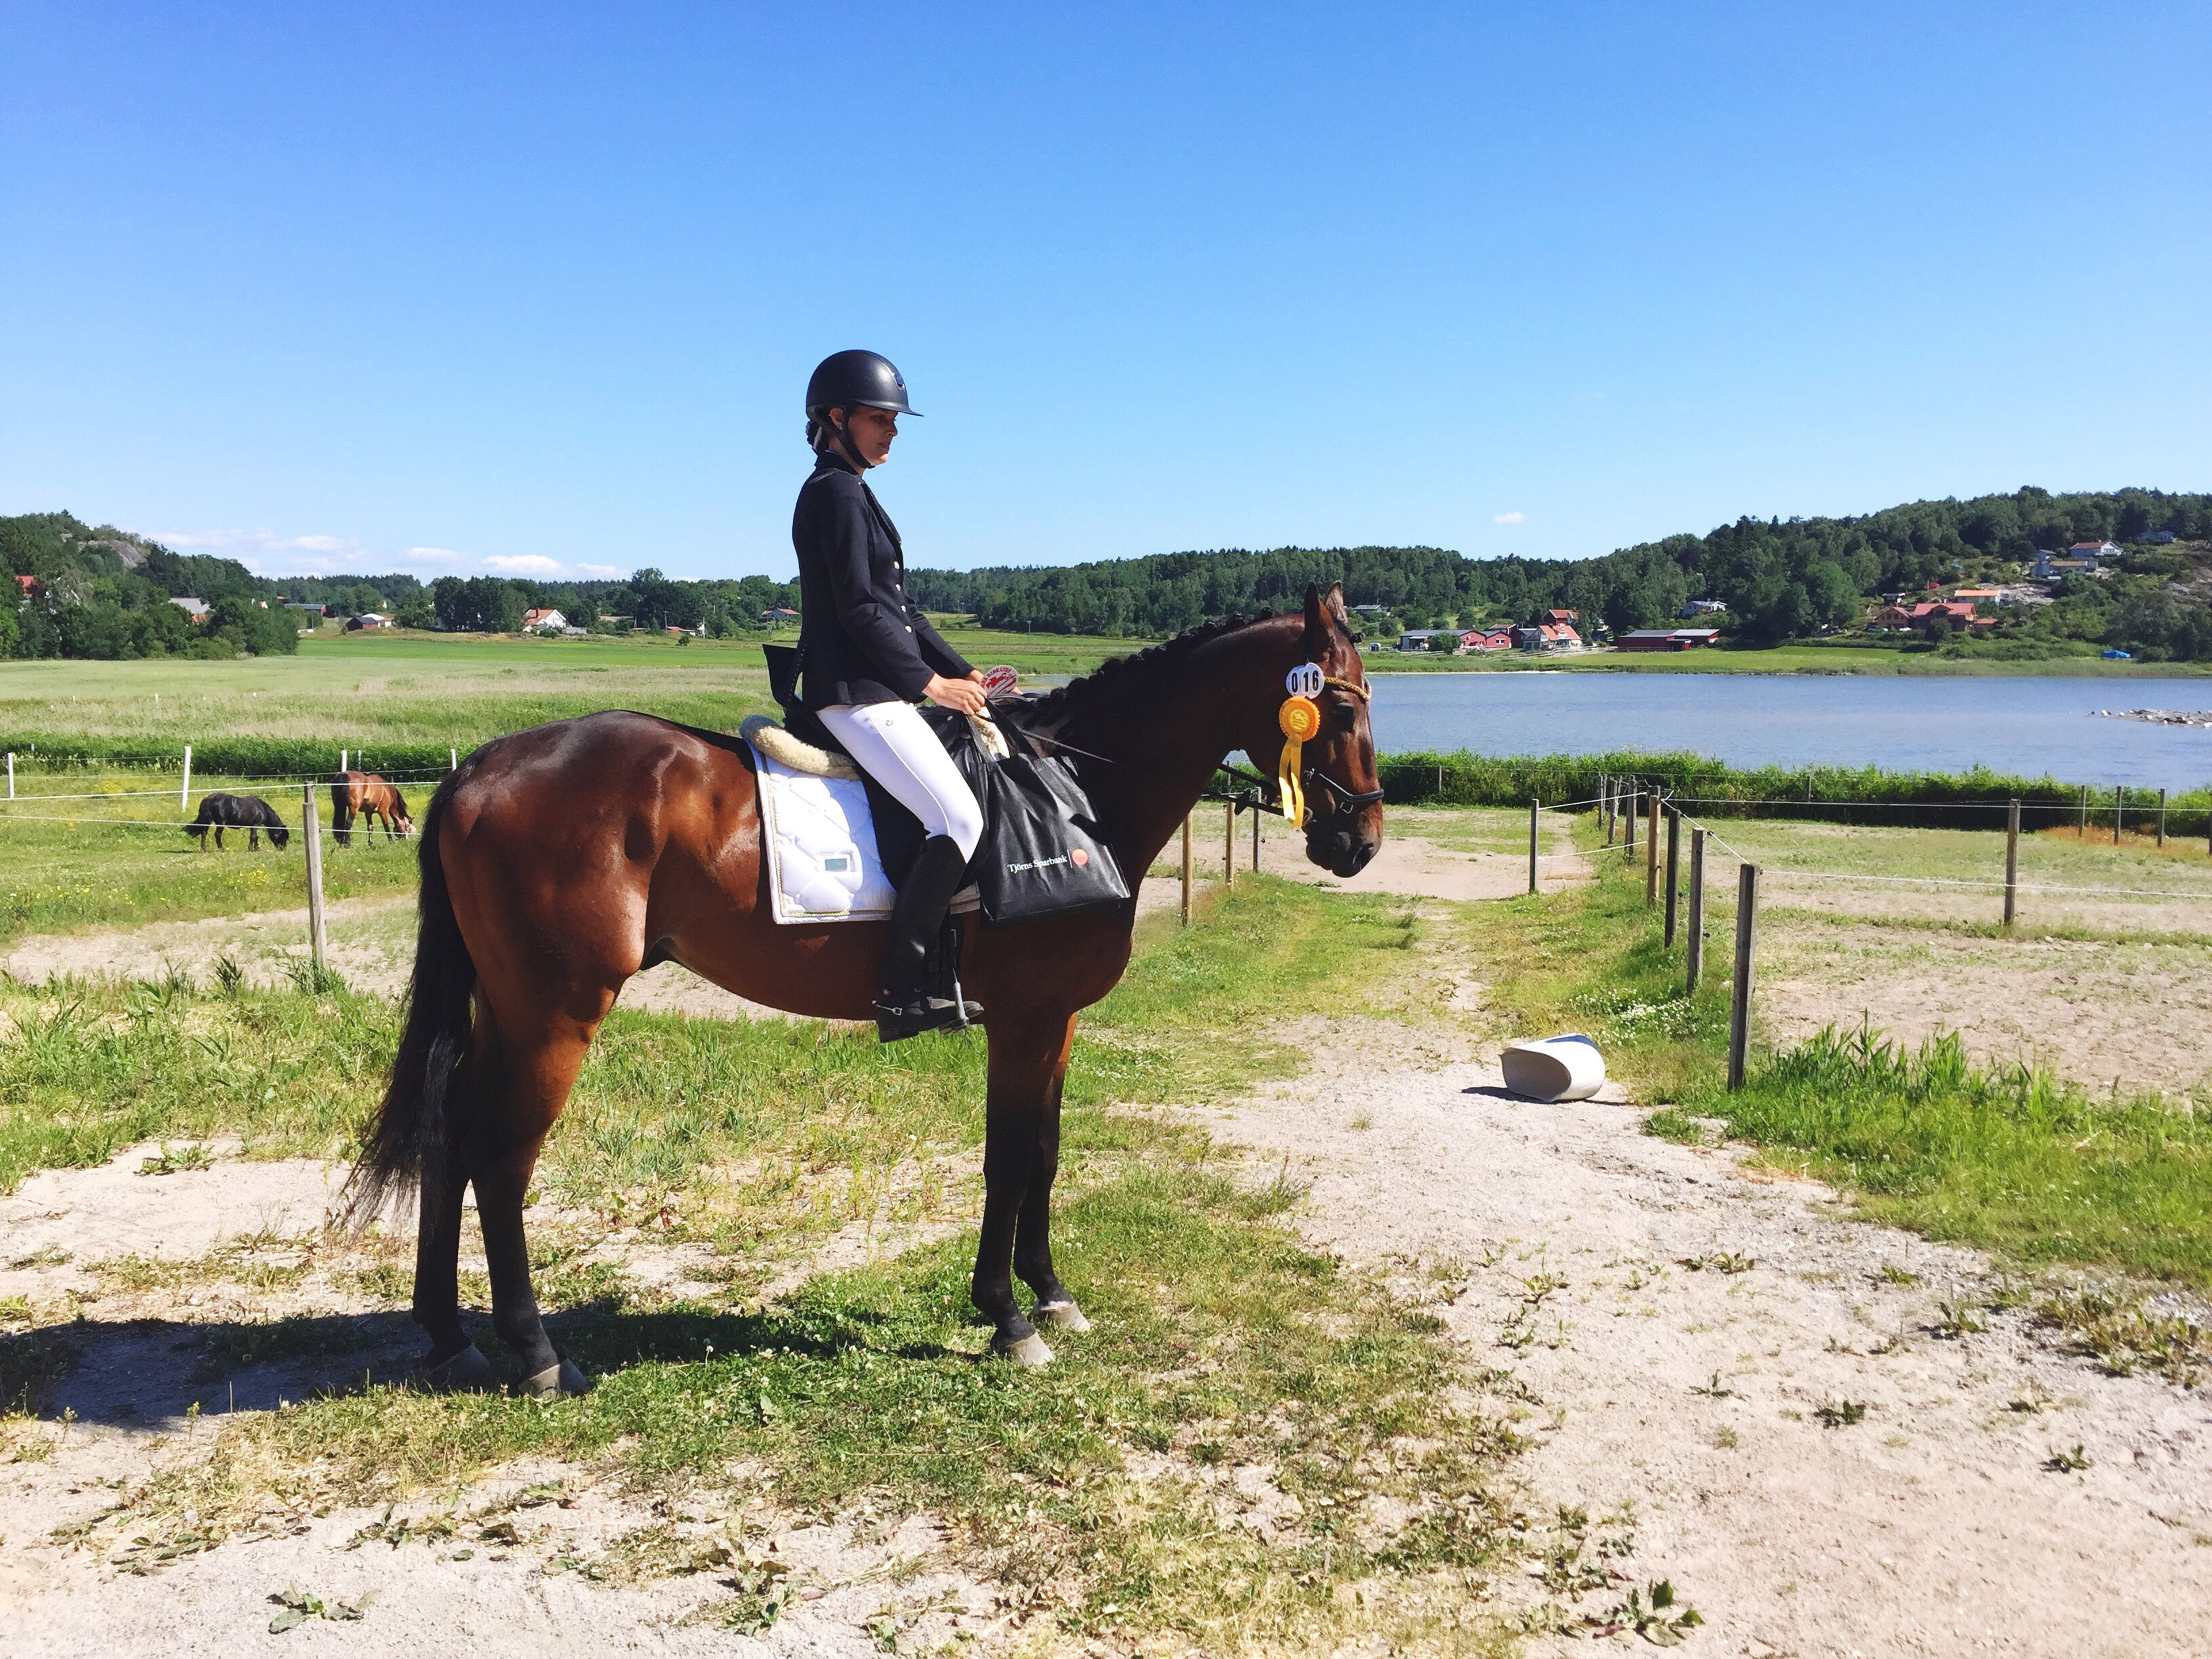 horse, full length, domestic animals, animal themes, mammal, real people, livestock, one person, horseback riding, standing, casual clothing, leisure activity, one animal, field, nature, lifestyles, riding, young adult, outdoors, young women, day, grass, clear sky, sky, people